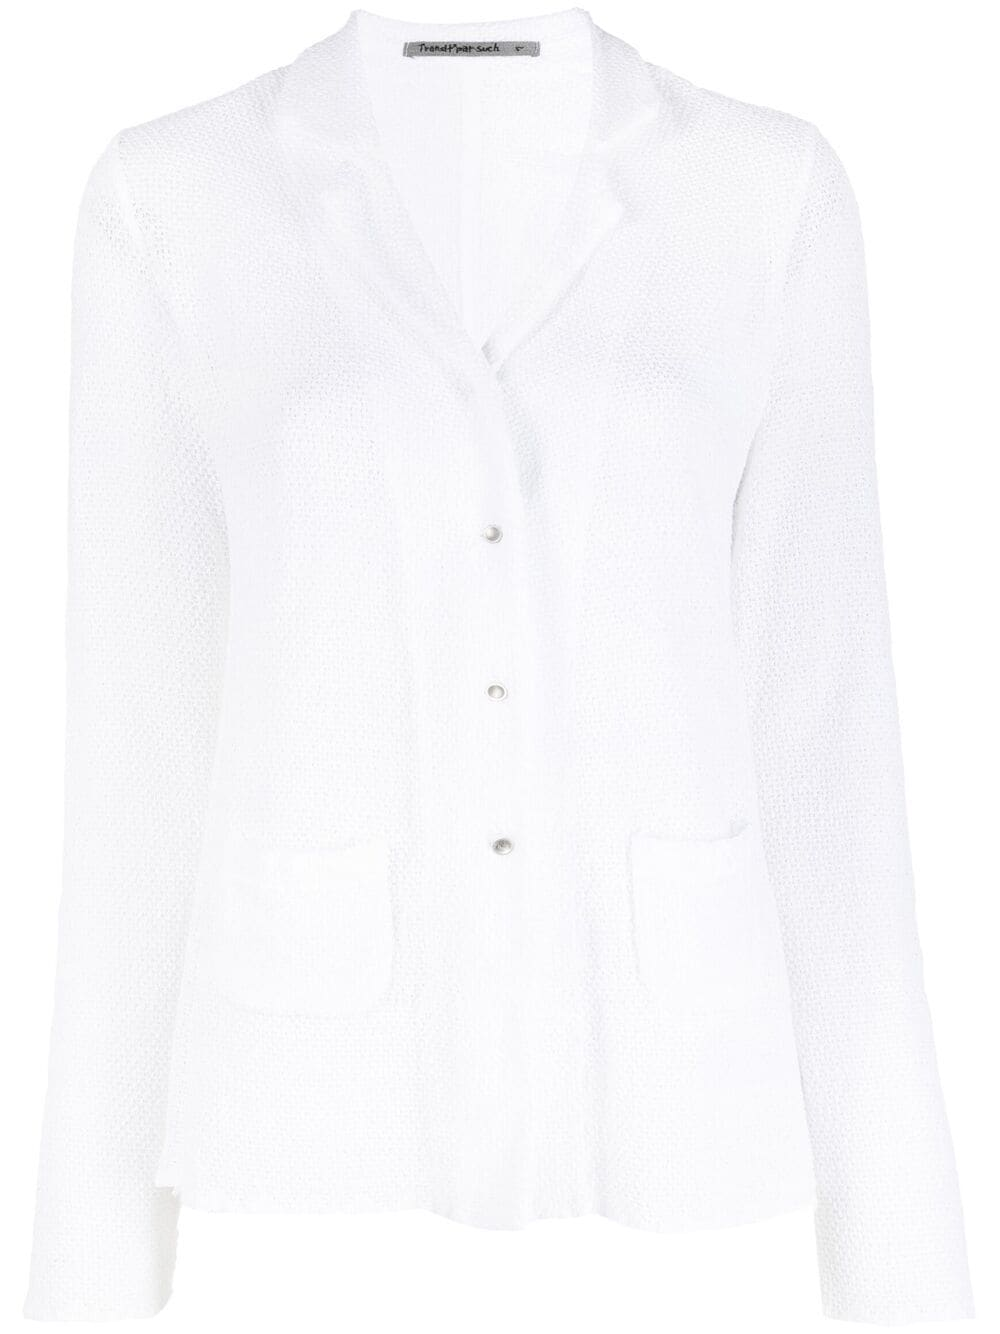 White stretch cotton single-breasted fitted blazer   TRANSIT |  | CFDTRN-A10000